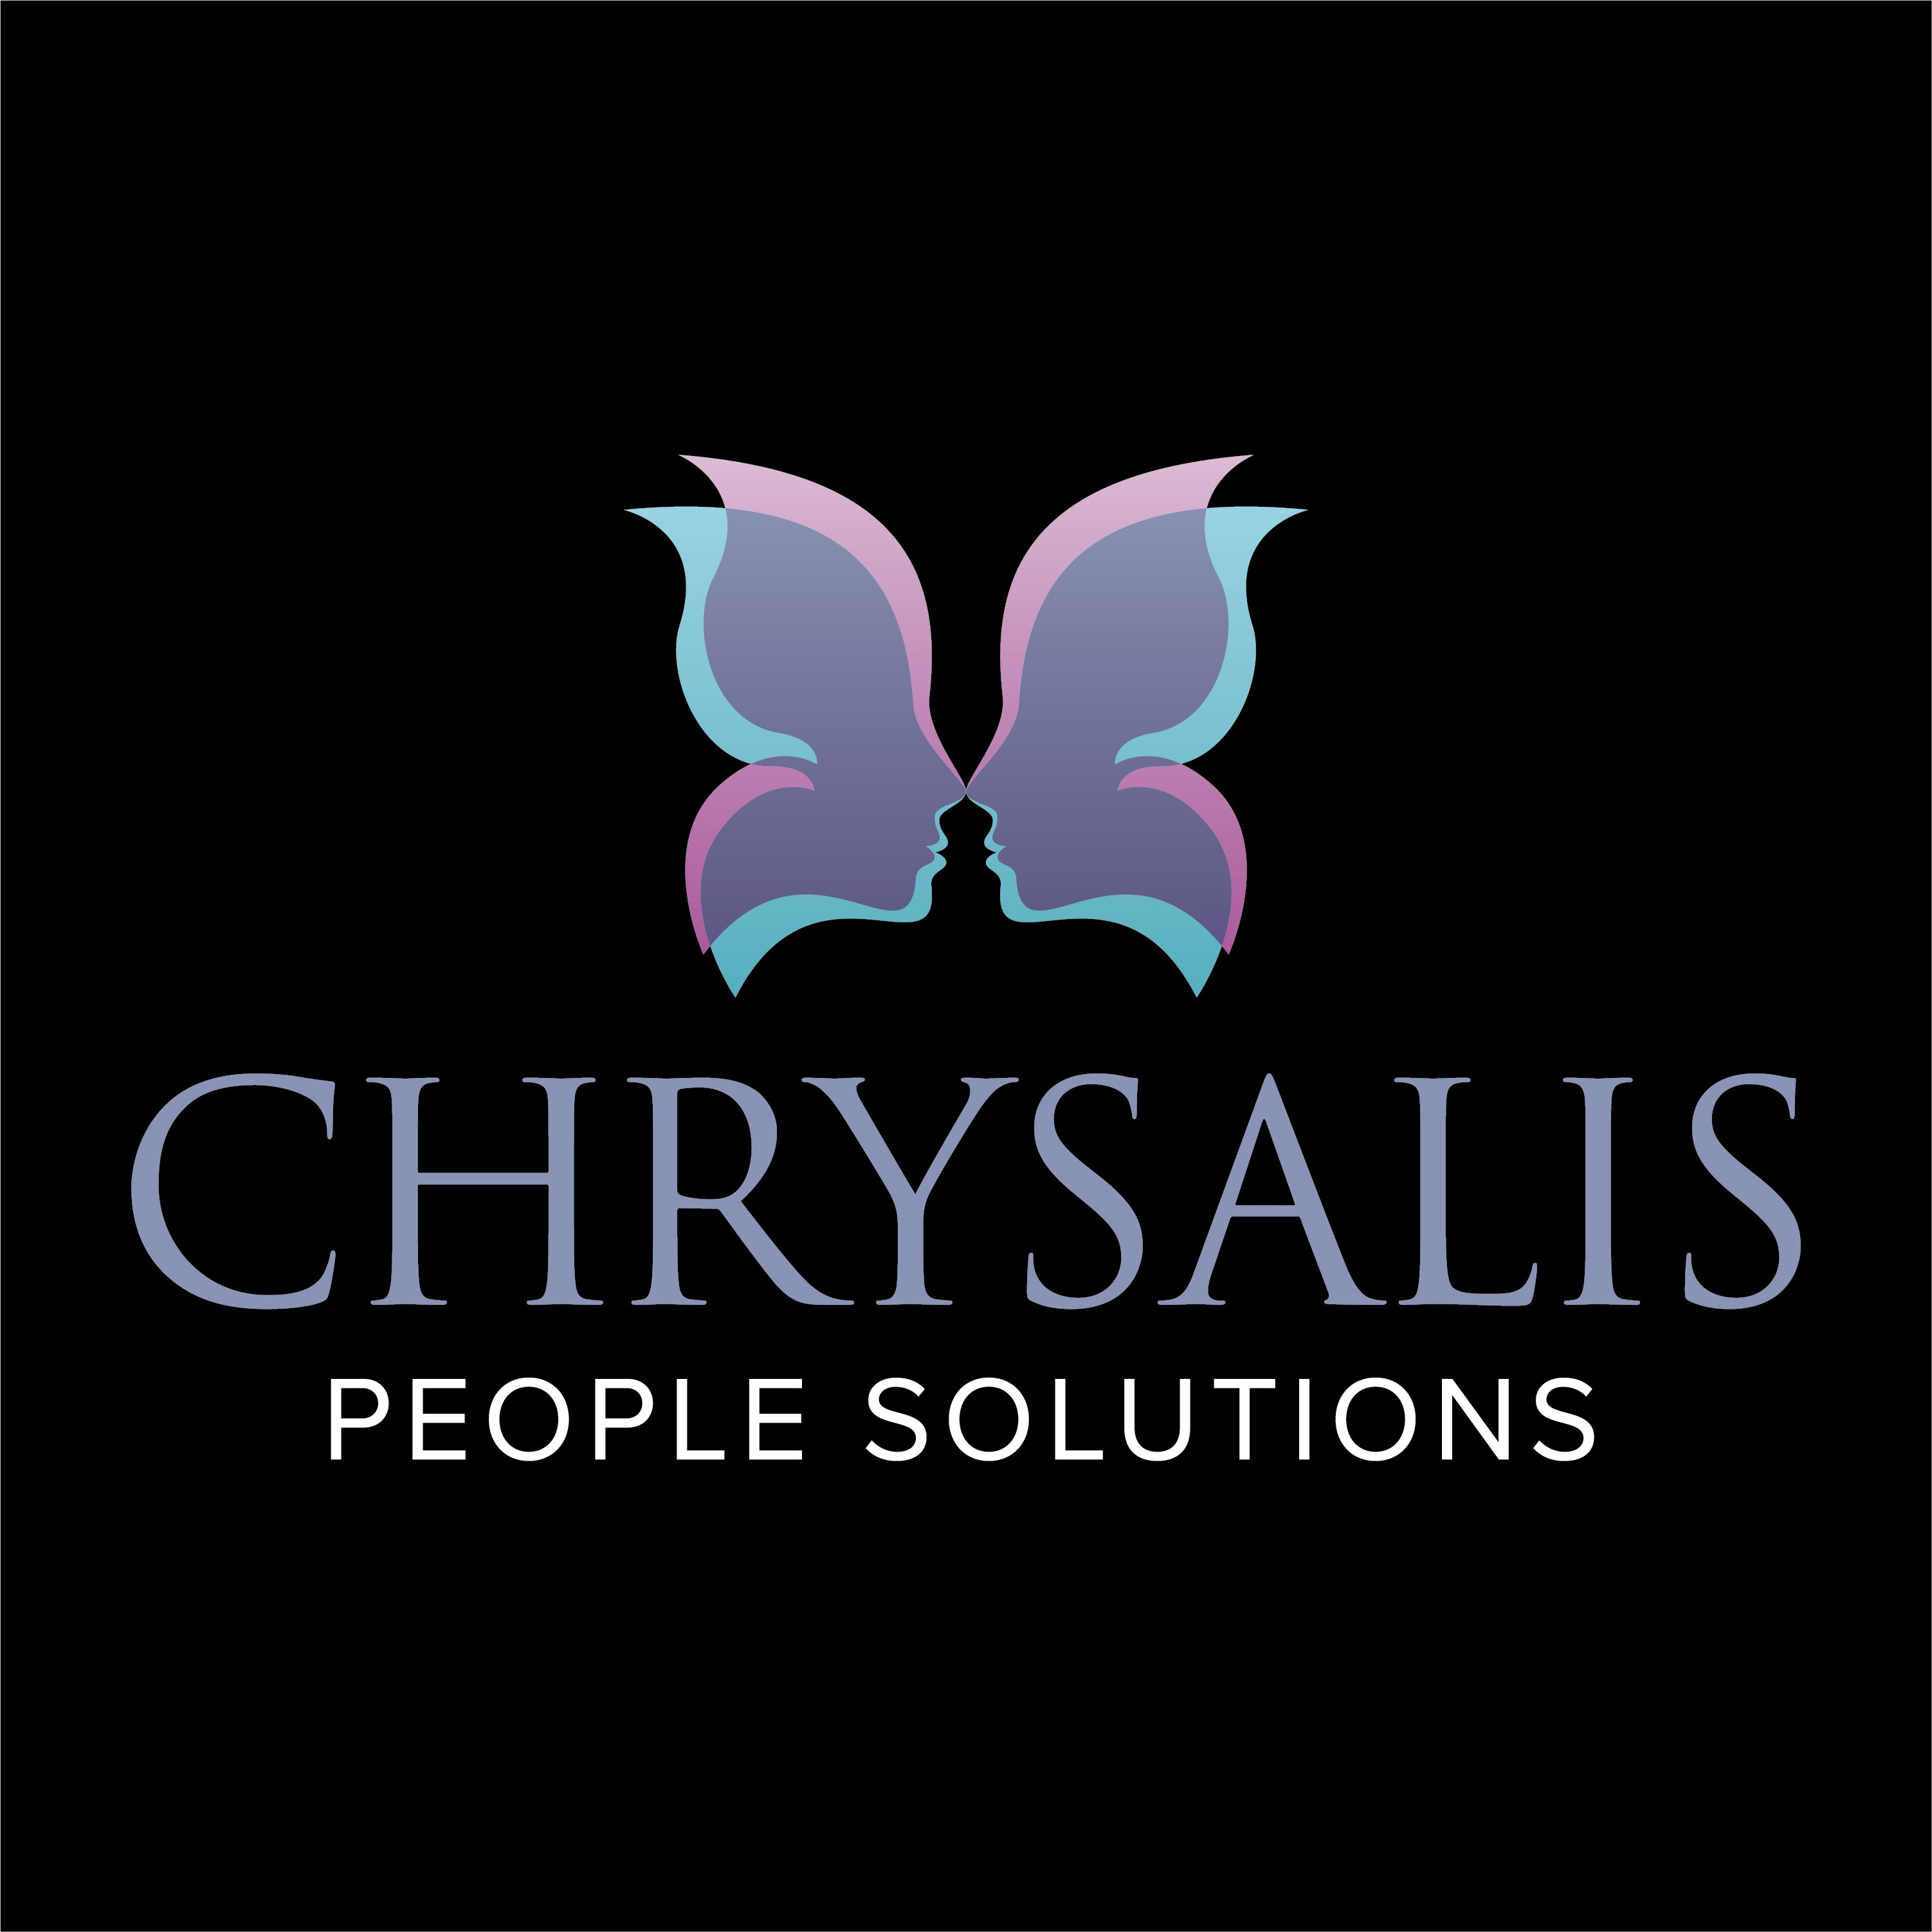 Introducing Chrysalis People Solutions